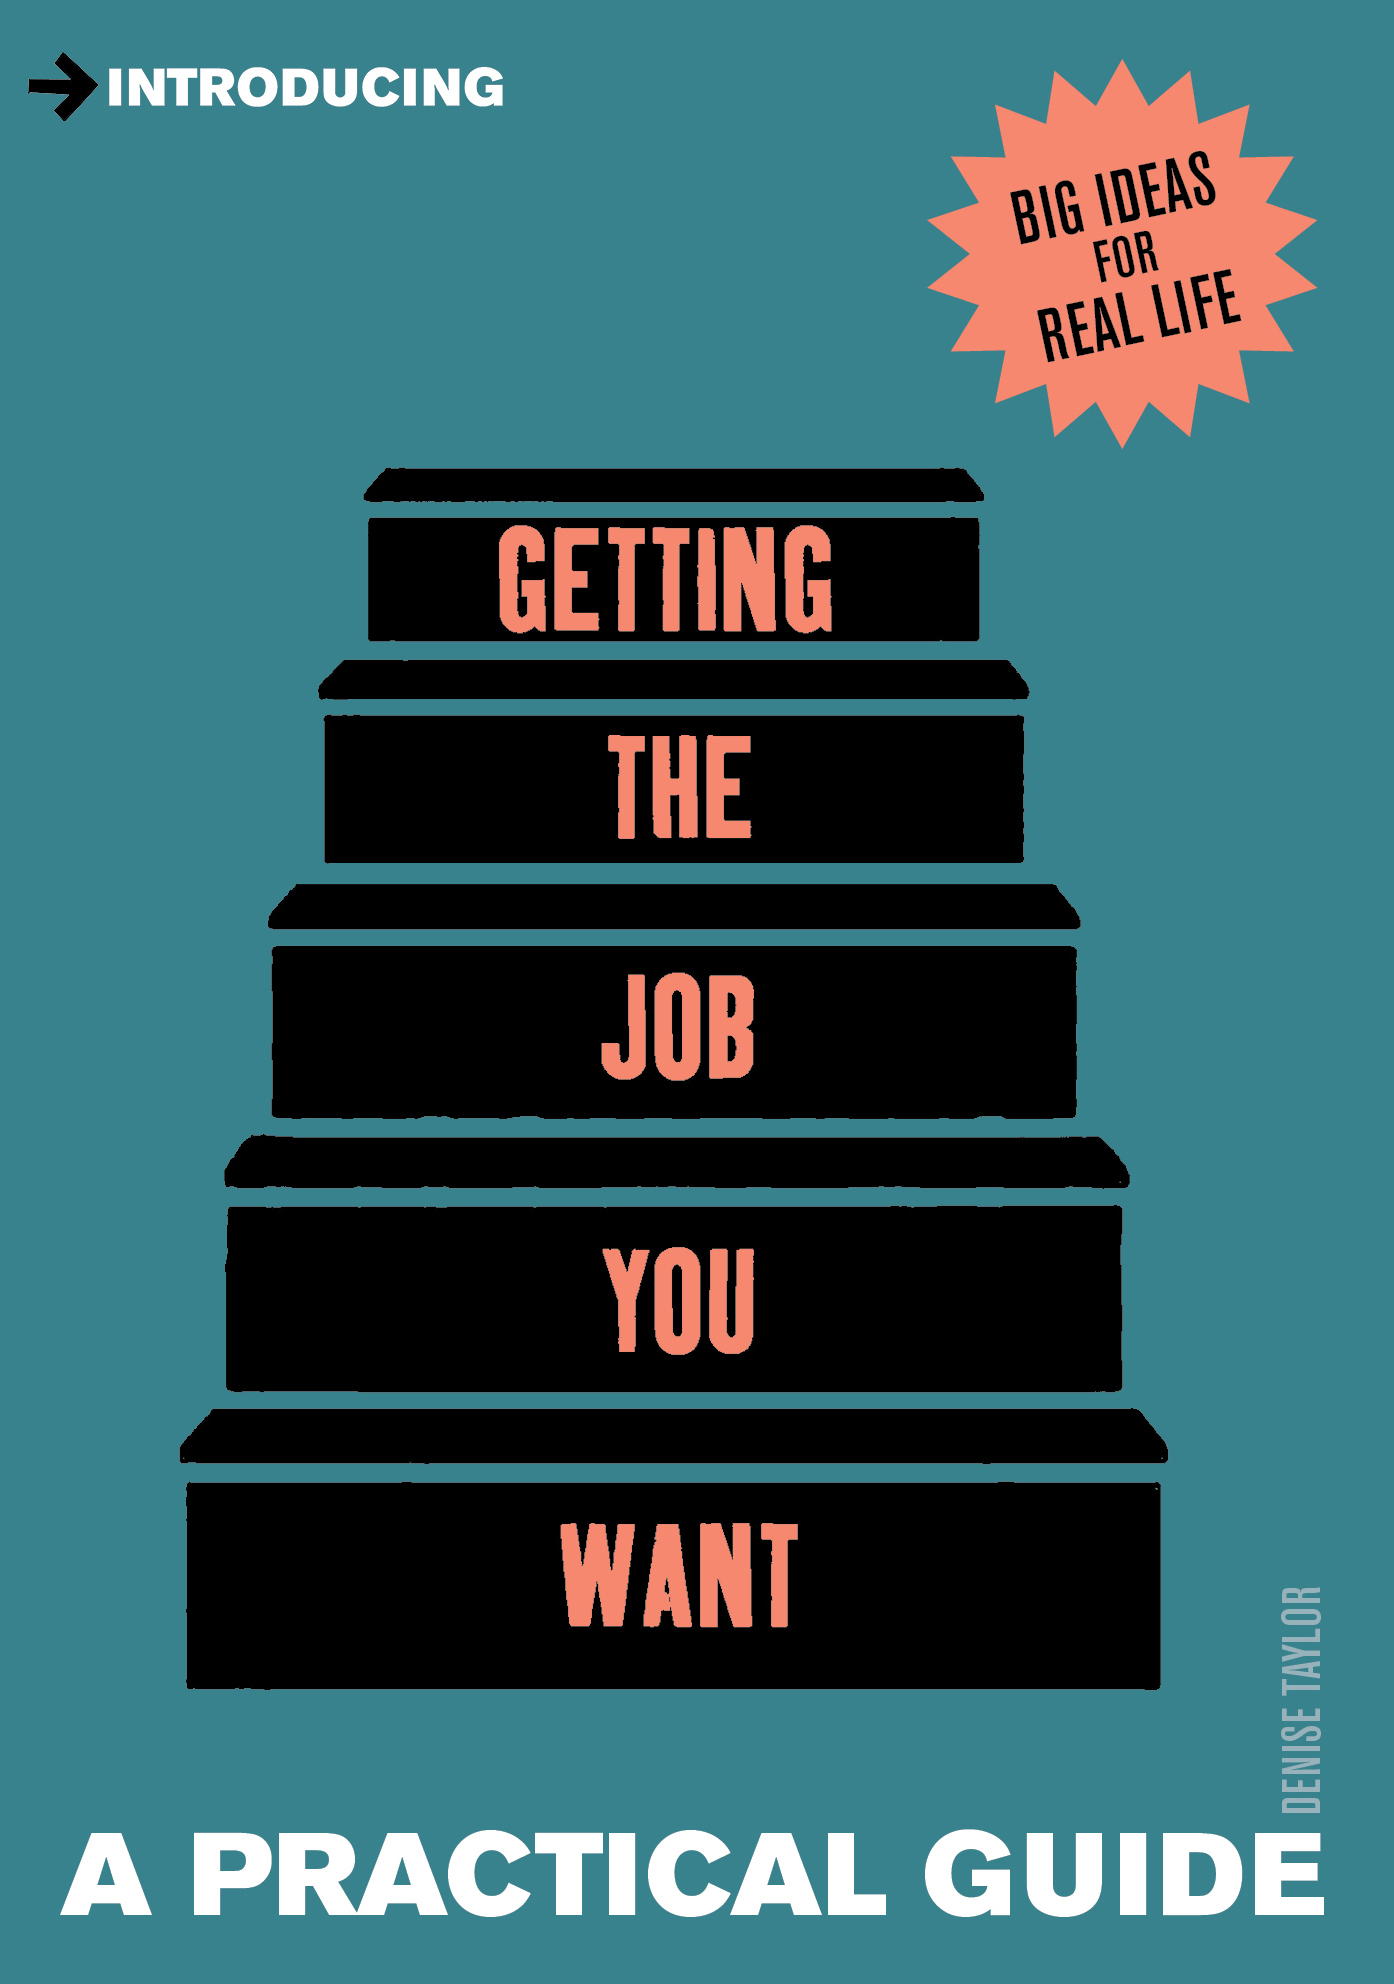 introducing getting the job you want denise taylor cover